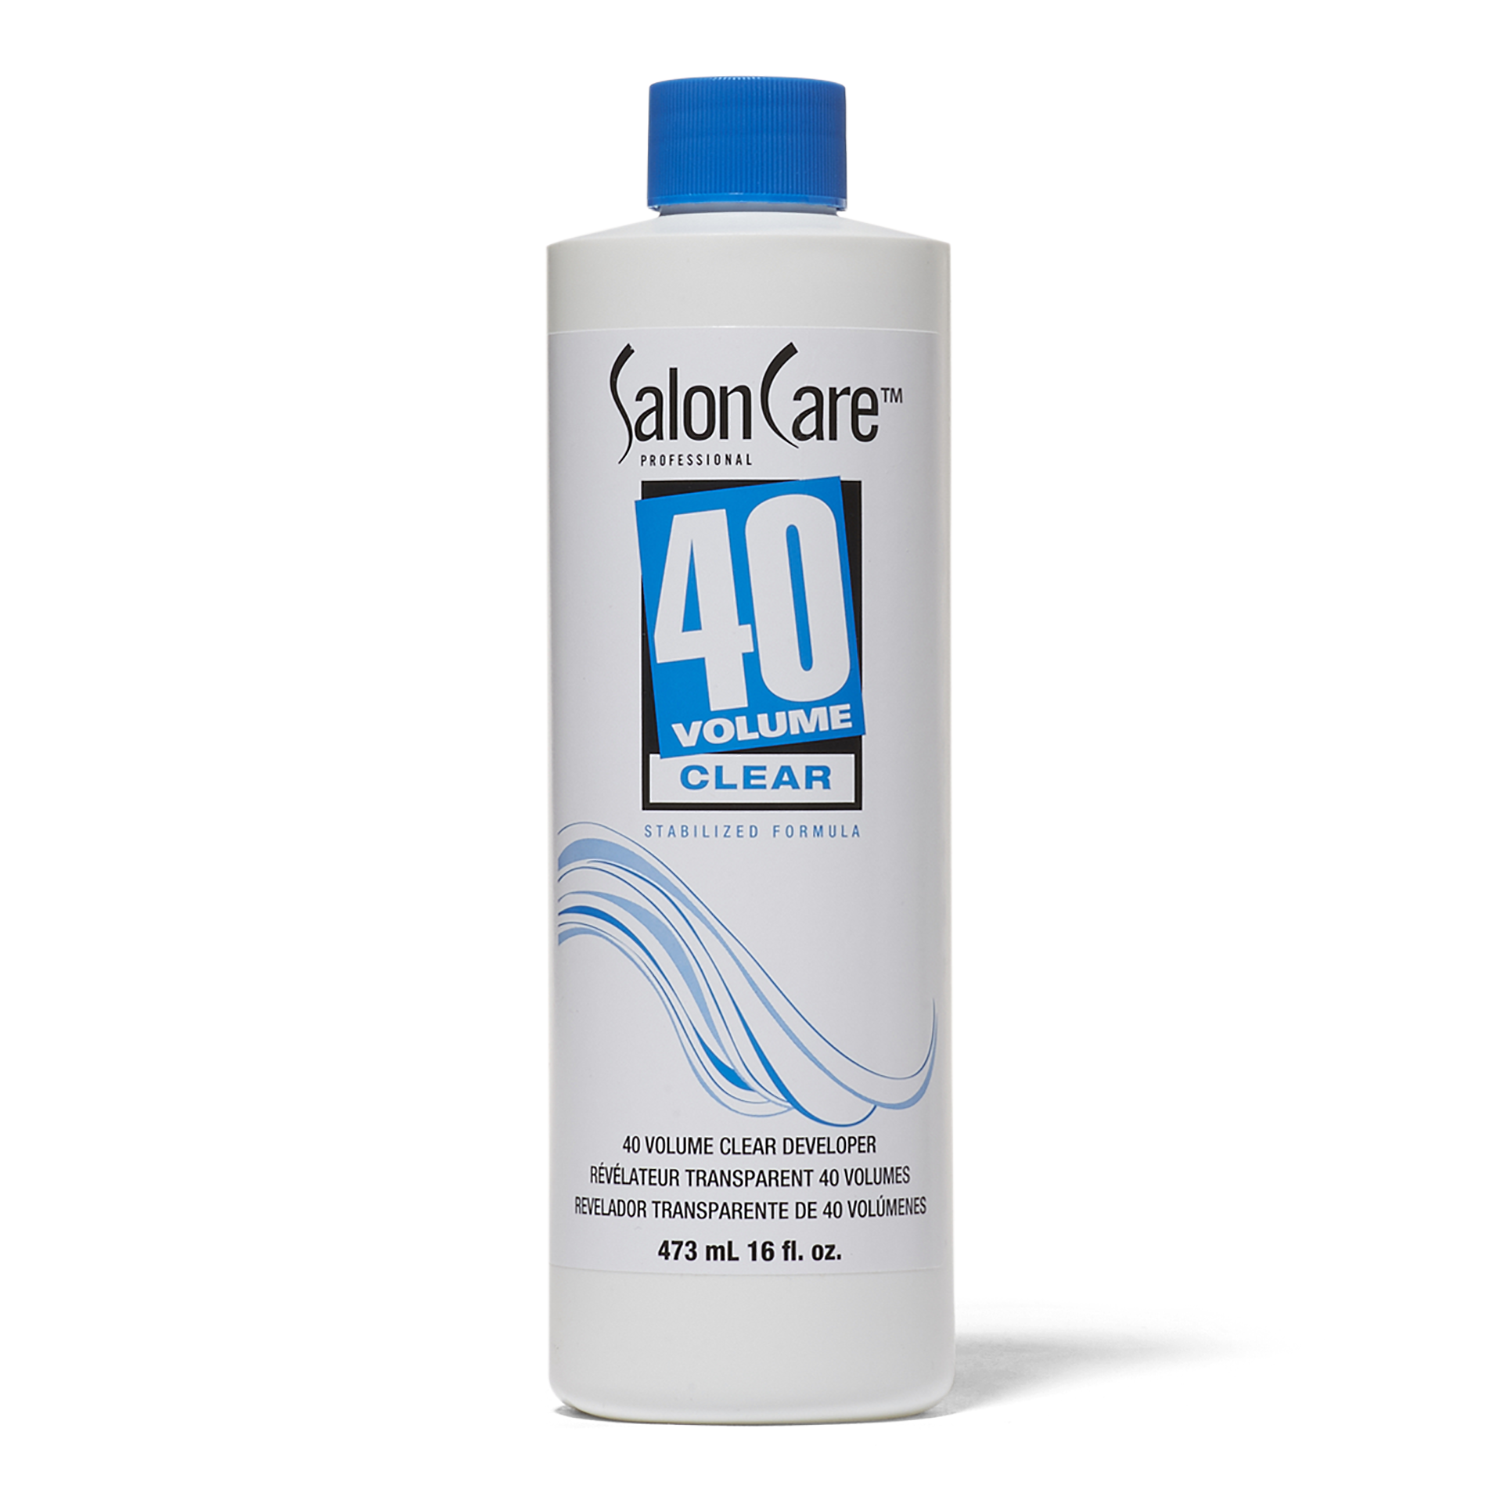 Salon Care Clear Developer 40 Volume